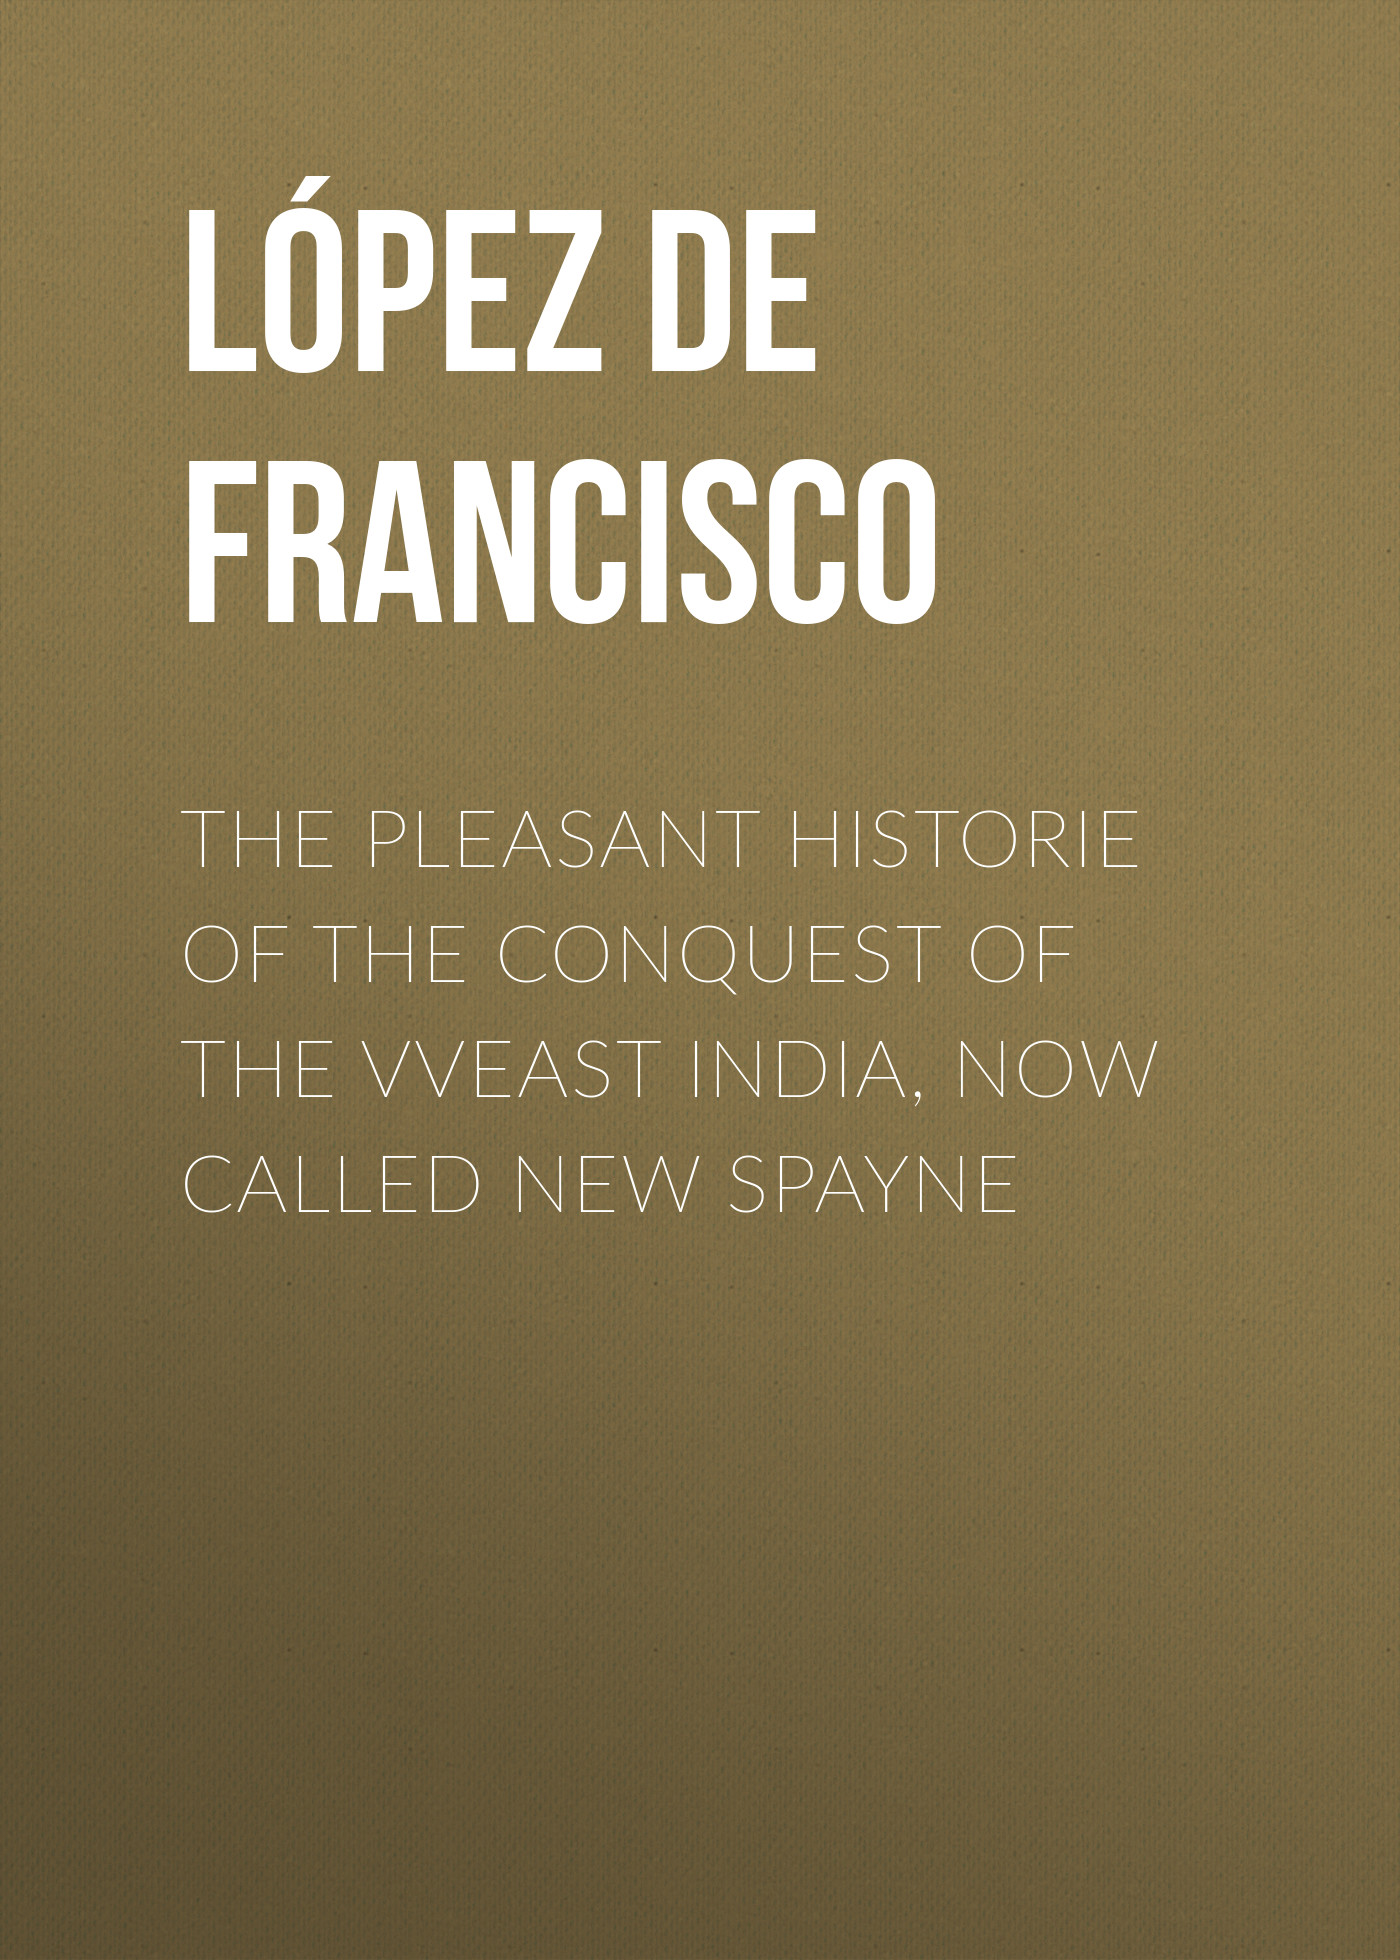 López de Gómara Francisco The pleasant historie of the conquest of the VVeast India, now called new Spayne john row the historie of the kirk of scotland icelandic edition